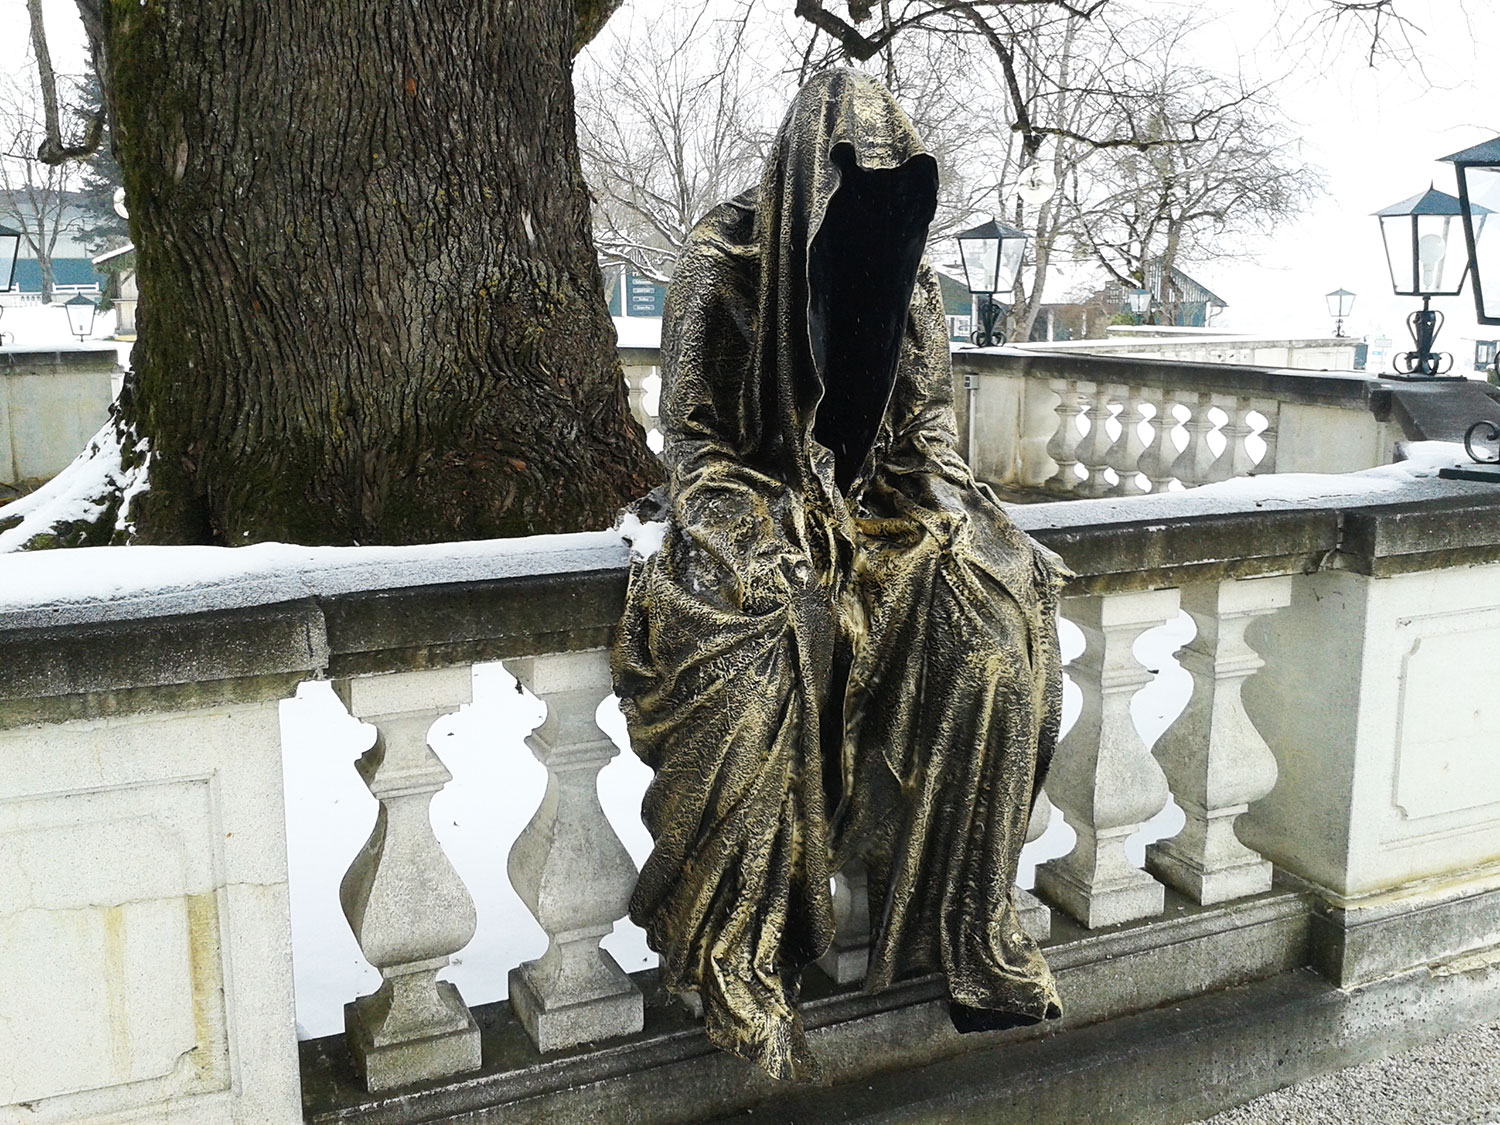 schloß-pichlarn-thiele-fein-art-guardians-of-time-manfred-kili-kielnhofer-contemporary-art-sculpture-412-